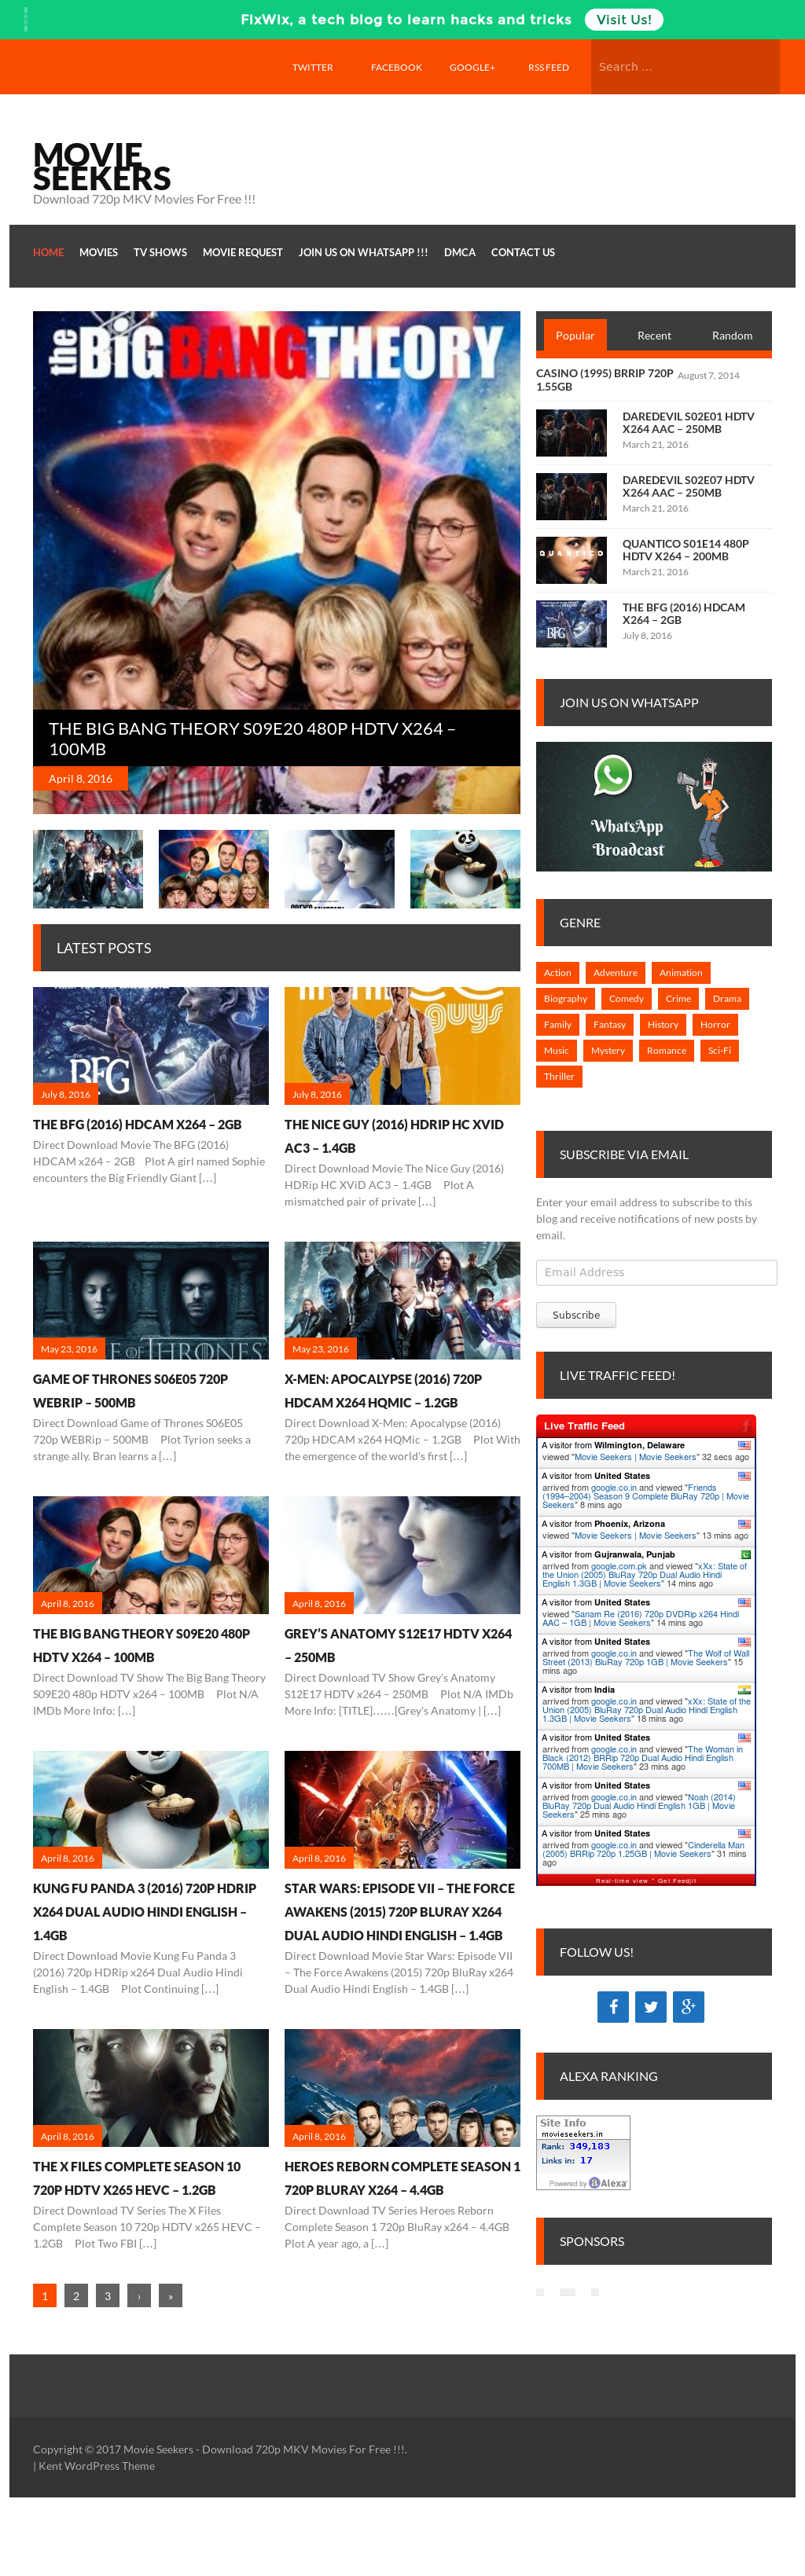 Movie Seekers Competitors, Revenue and Employees - Owler